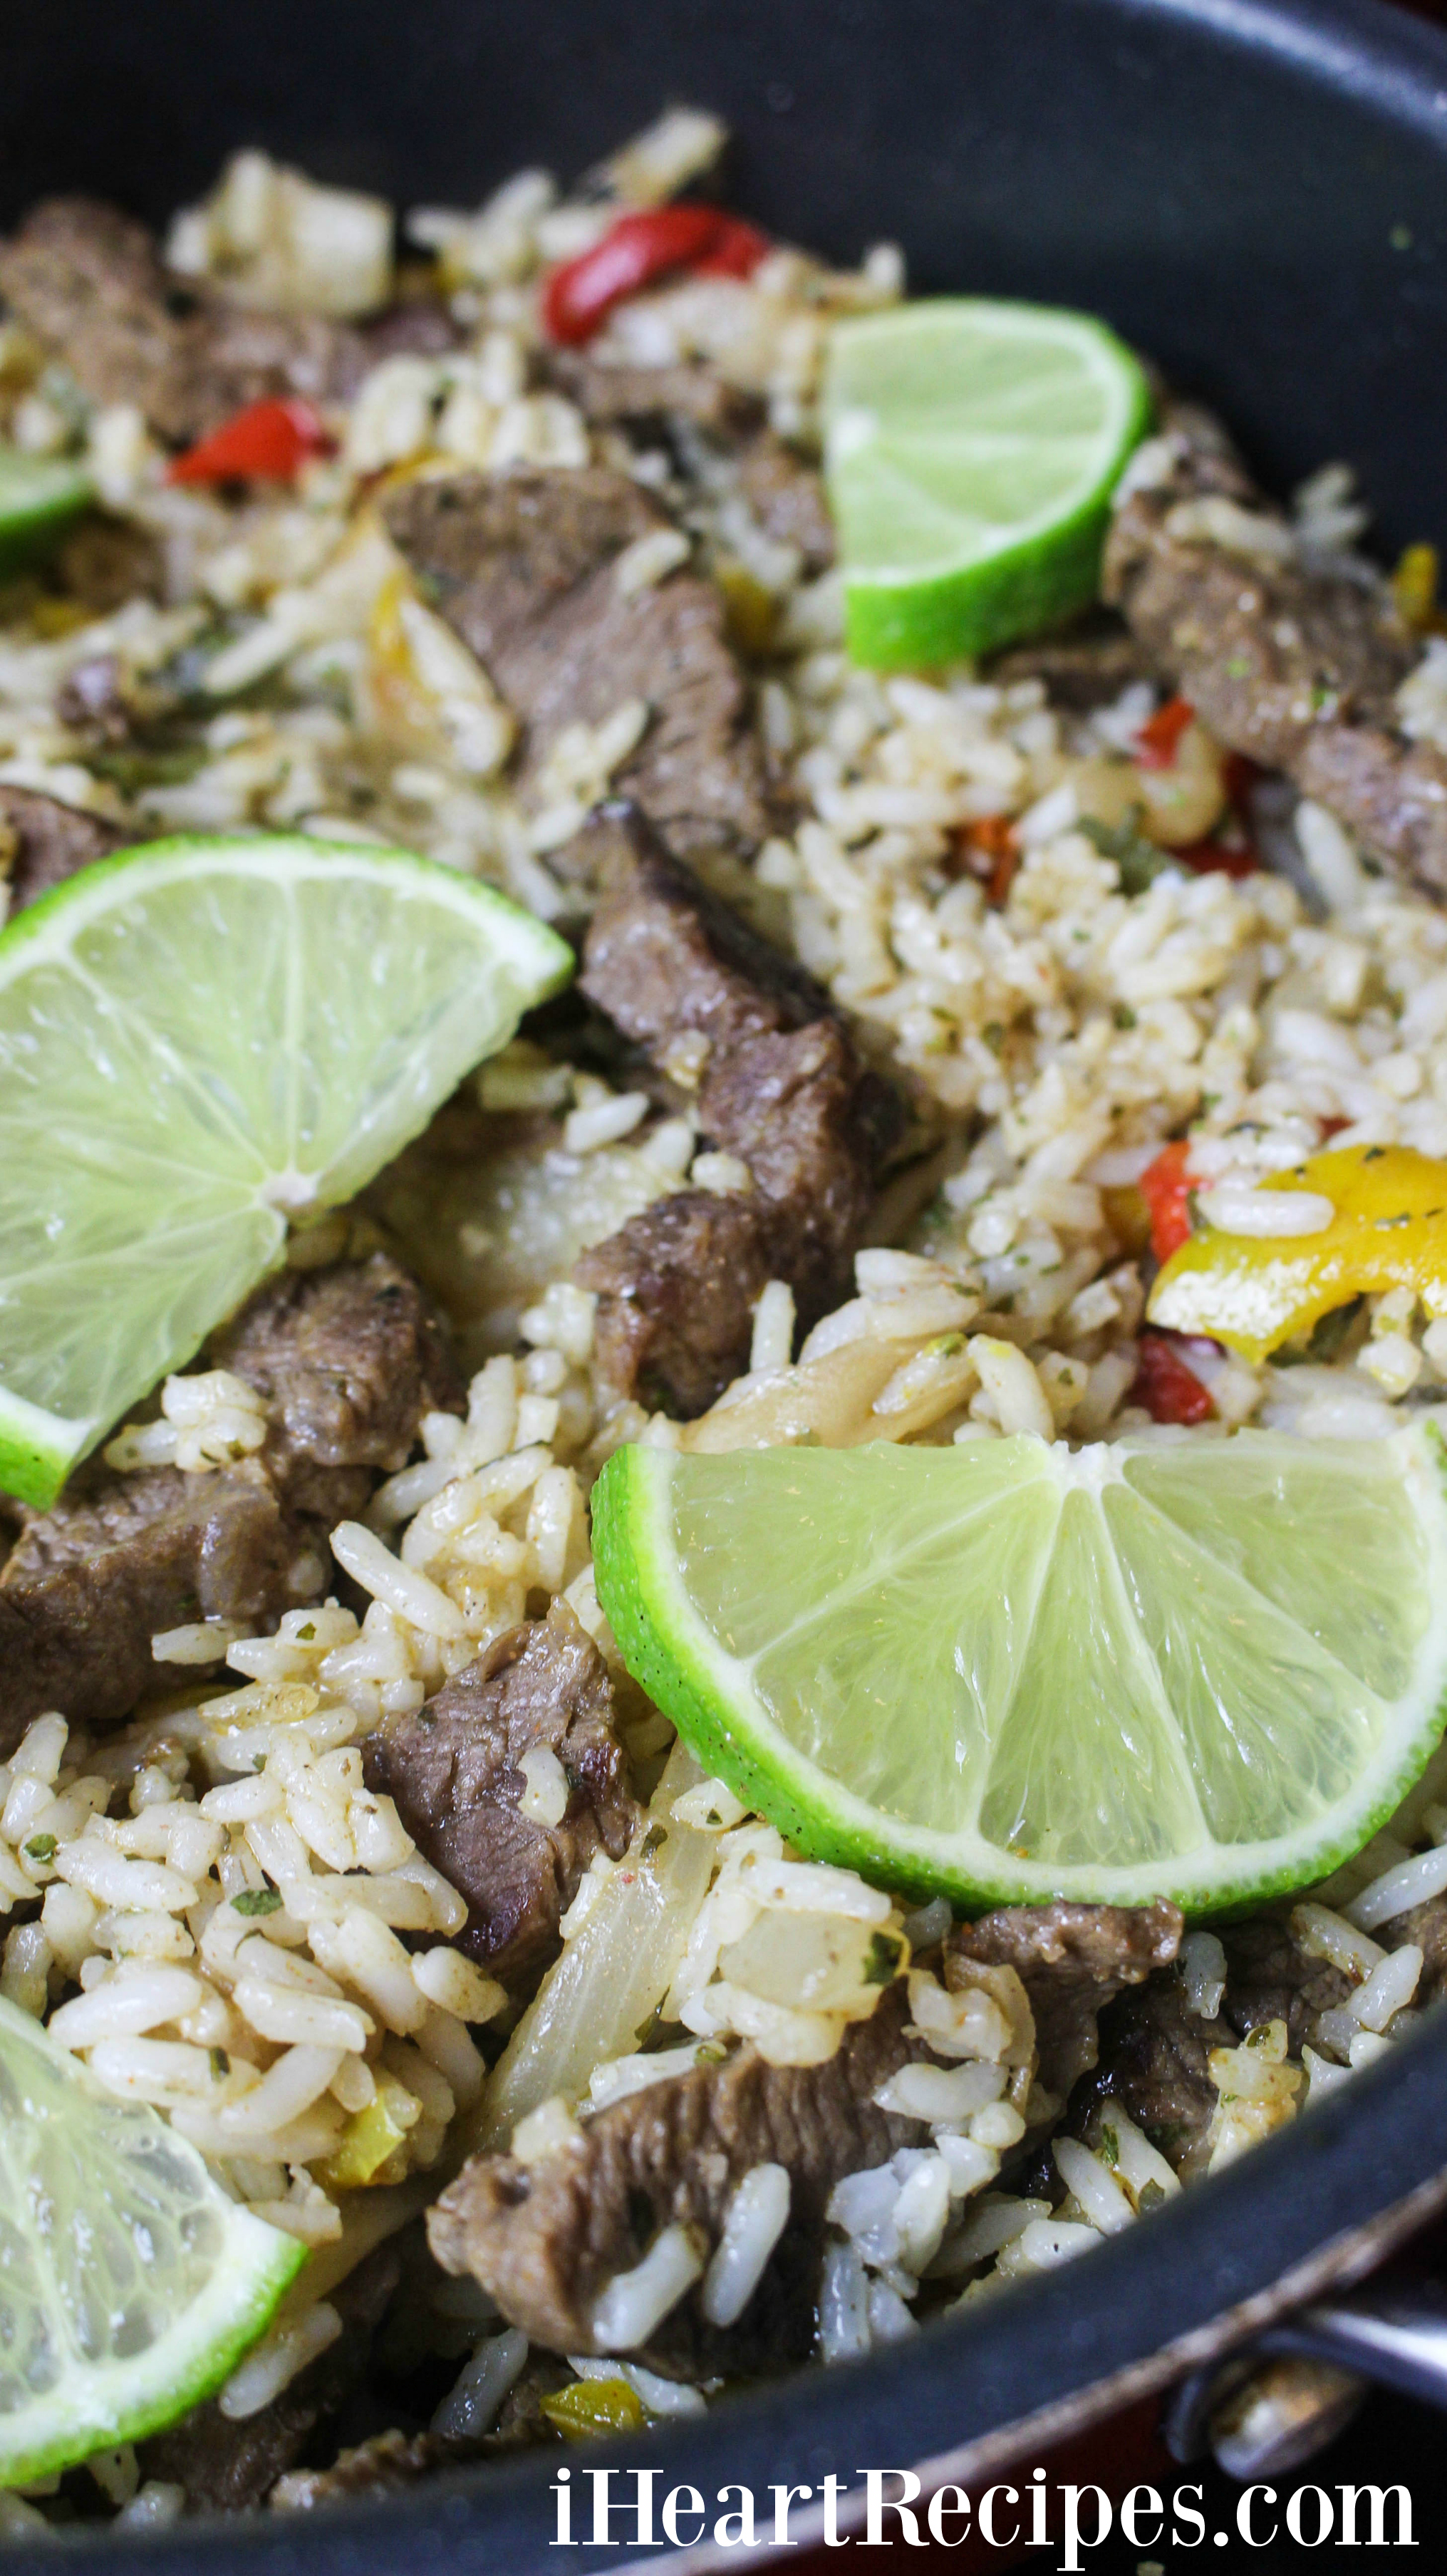 Zesty limes, tender steak and fluffy rice are some of the ingredients that give this fajita bowl all it's flavor